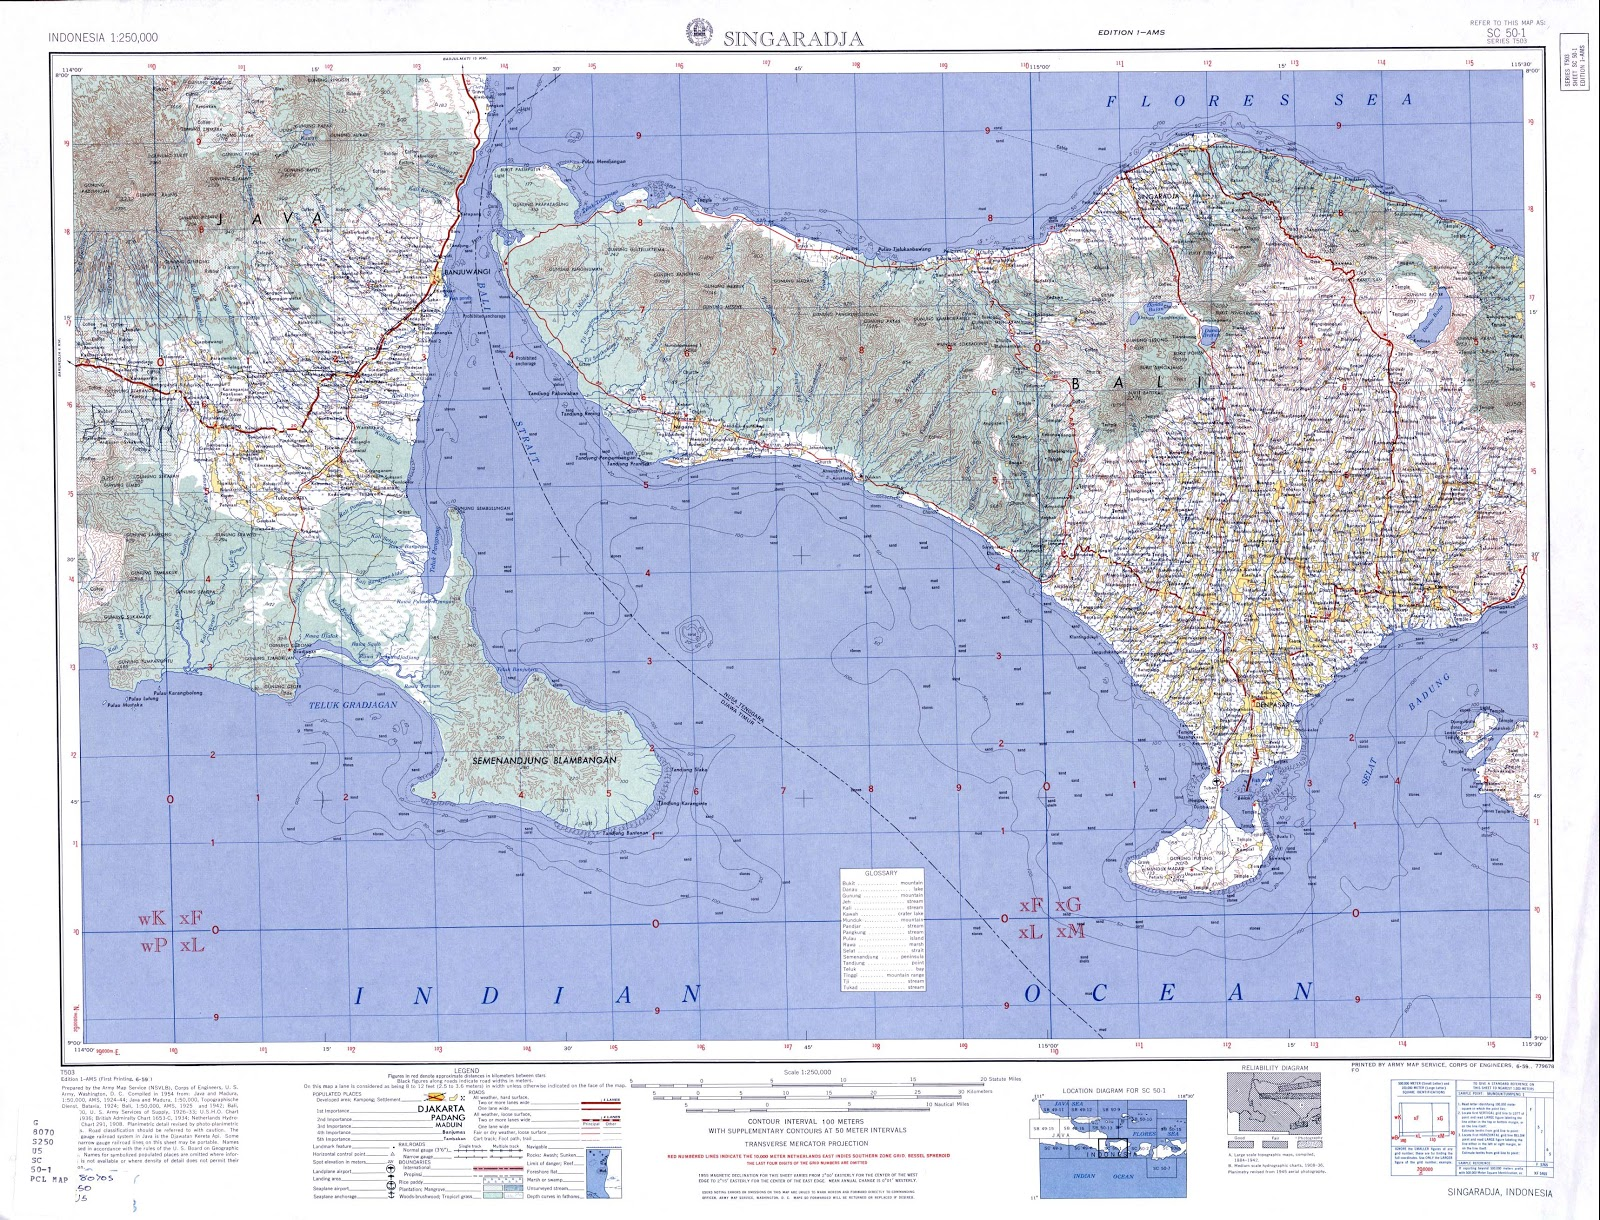 Amazing indonesia bali island topographic map scala 250k following are topographic map of bali island scale 250k there are some city in inside the map such negara tabanan denpasar singaraja semapura thecheapjerseys Choice Image